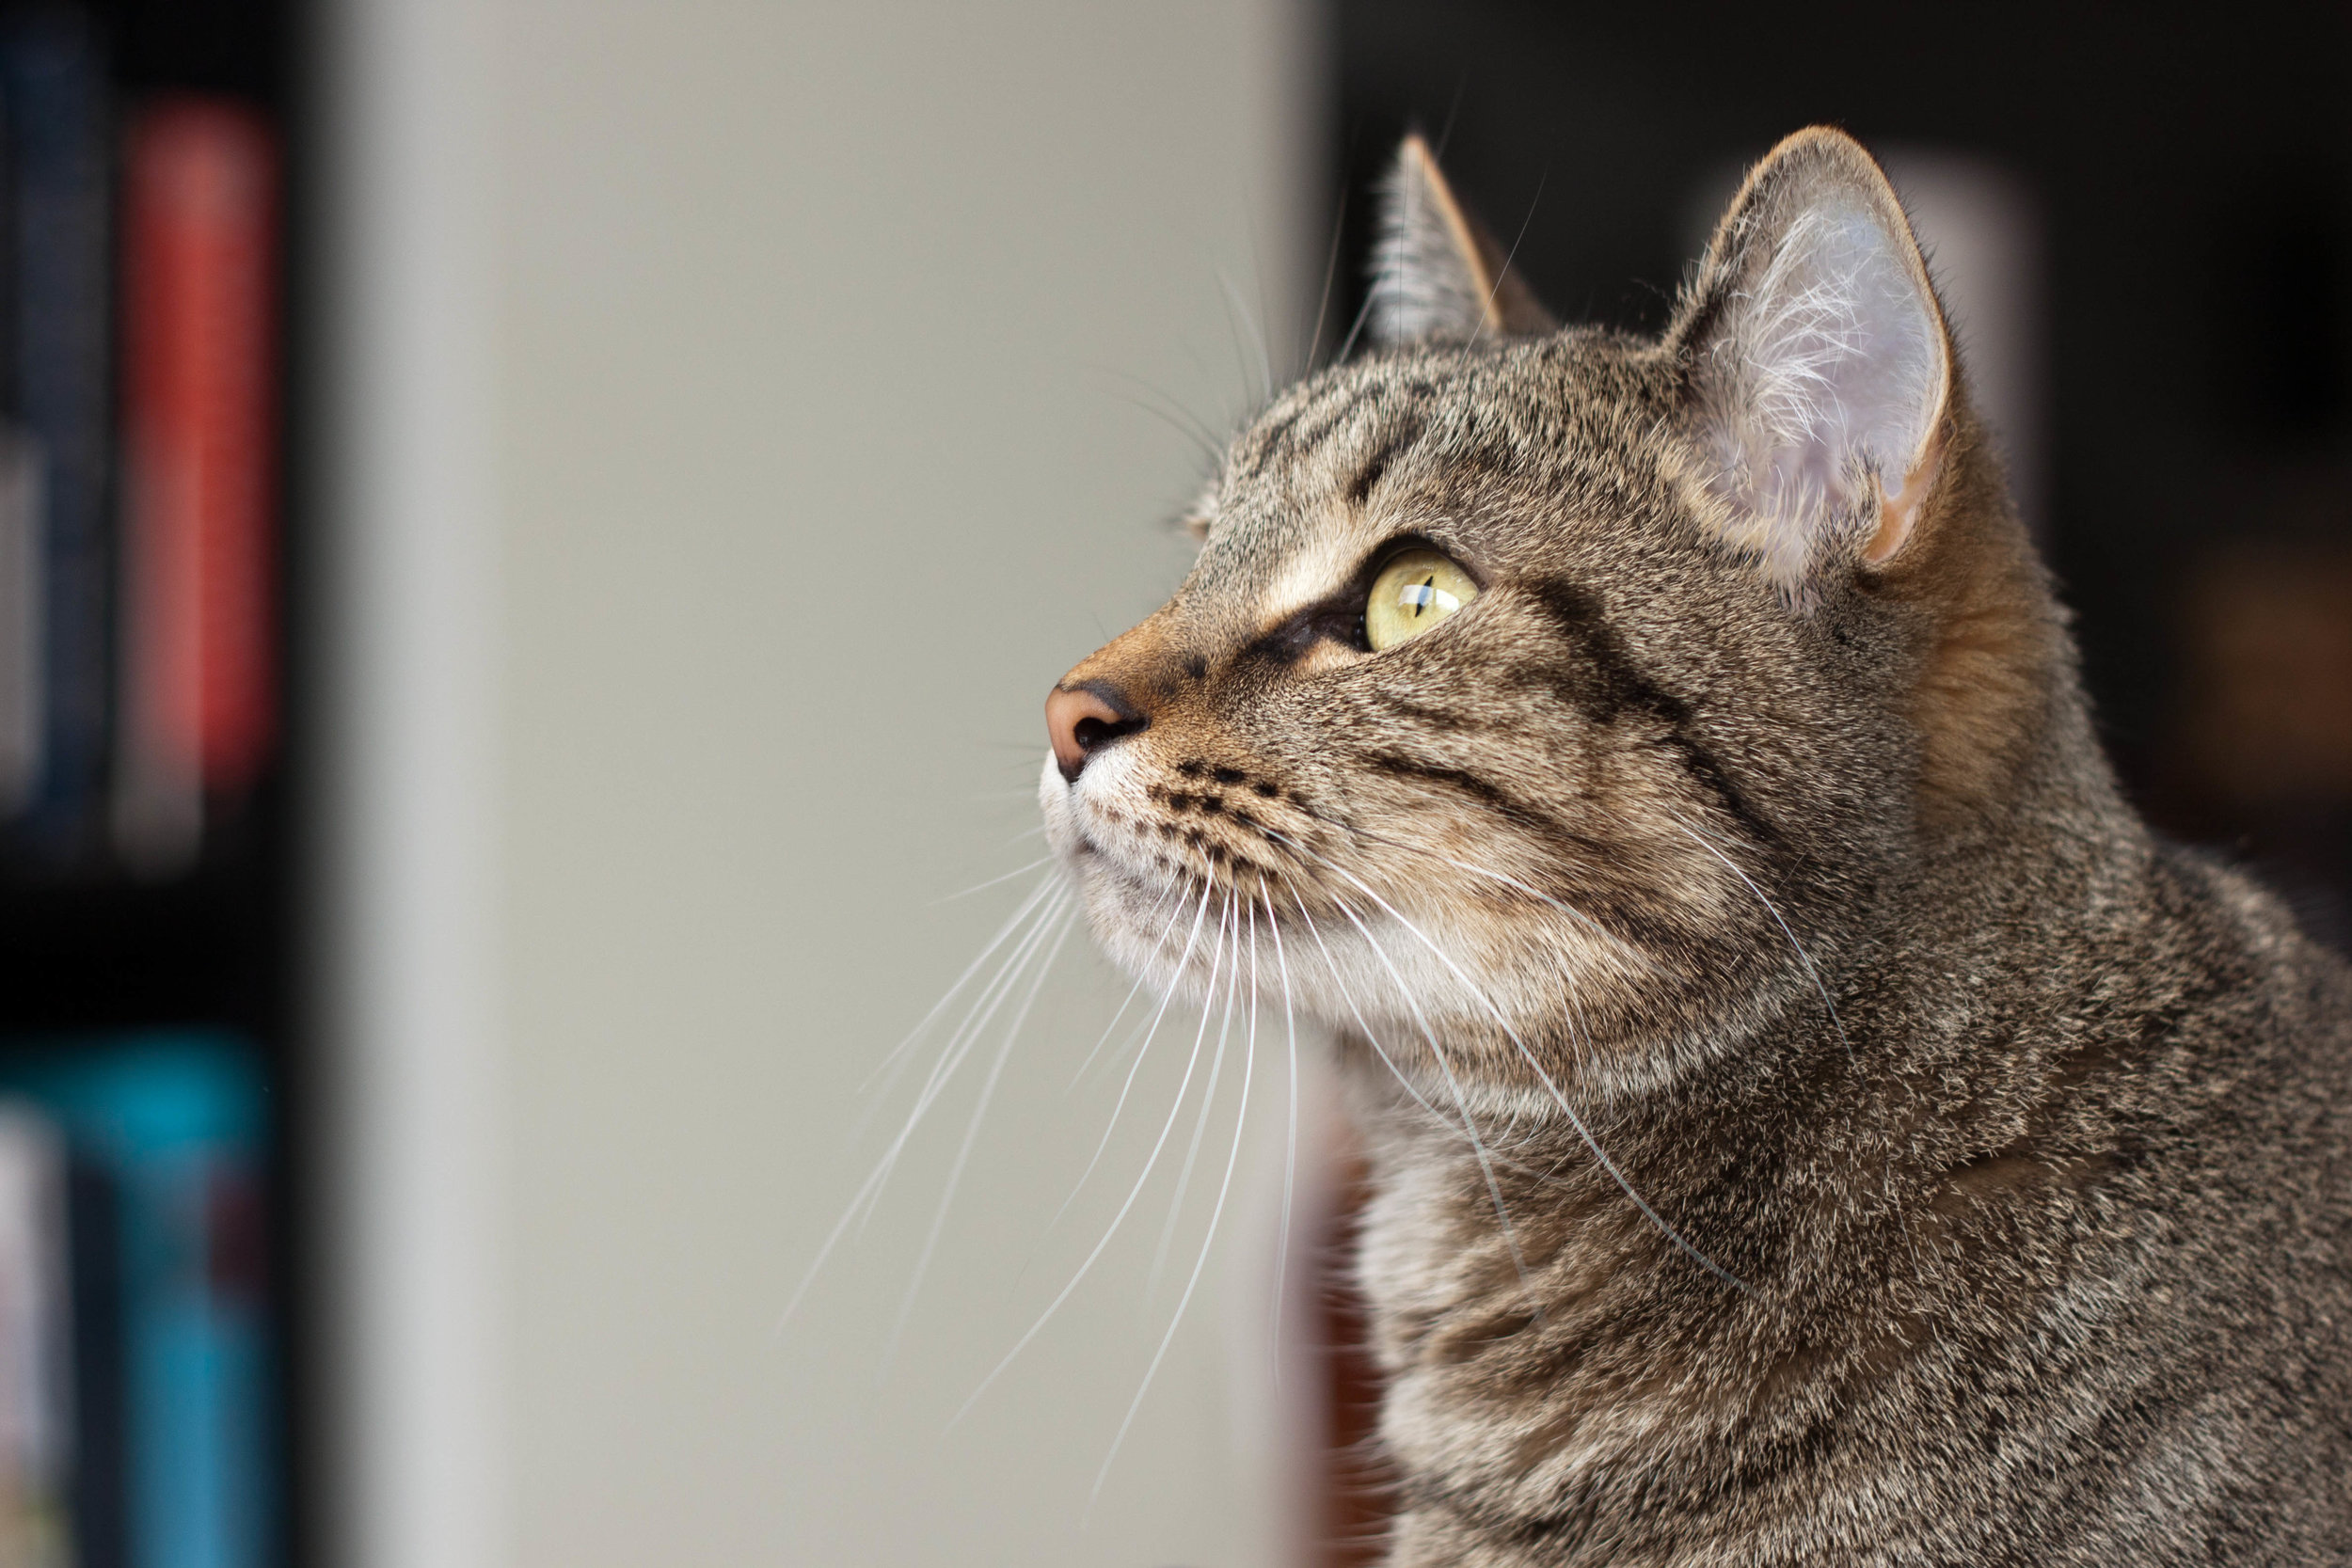 My cat, Chiyo, looks out the window of our home in Rhode Island, 2014.